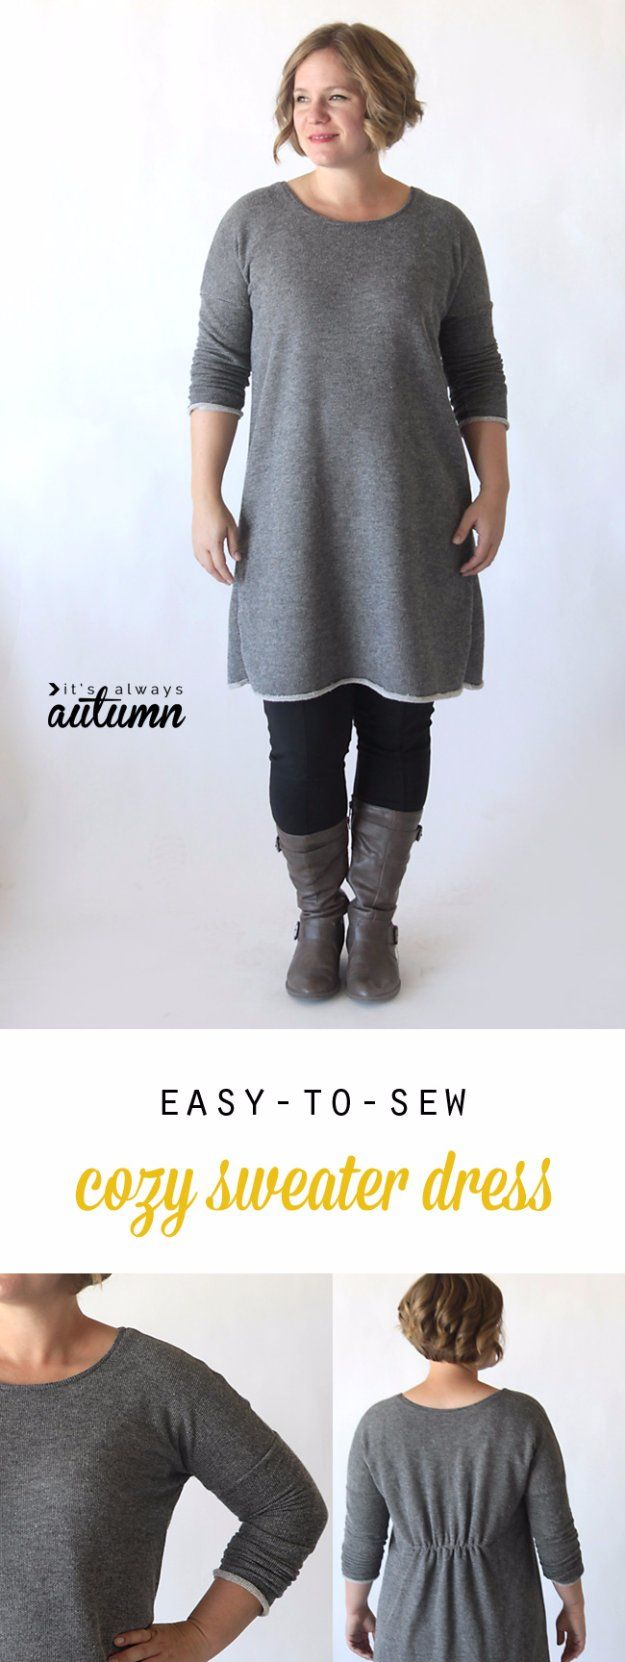 DIY Sewing Projects for Women - Easy to Sew Breezy Tee Long Sleeve Sweater Dress - How to Sew Dresses, Blouses, Pants, Tops and Fashion. Step by Step Tutorials and Instructions  http://diyjoy.com/diy-sewing-projects-for-women